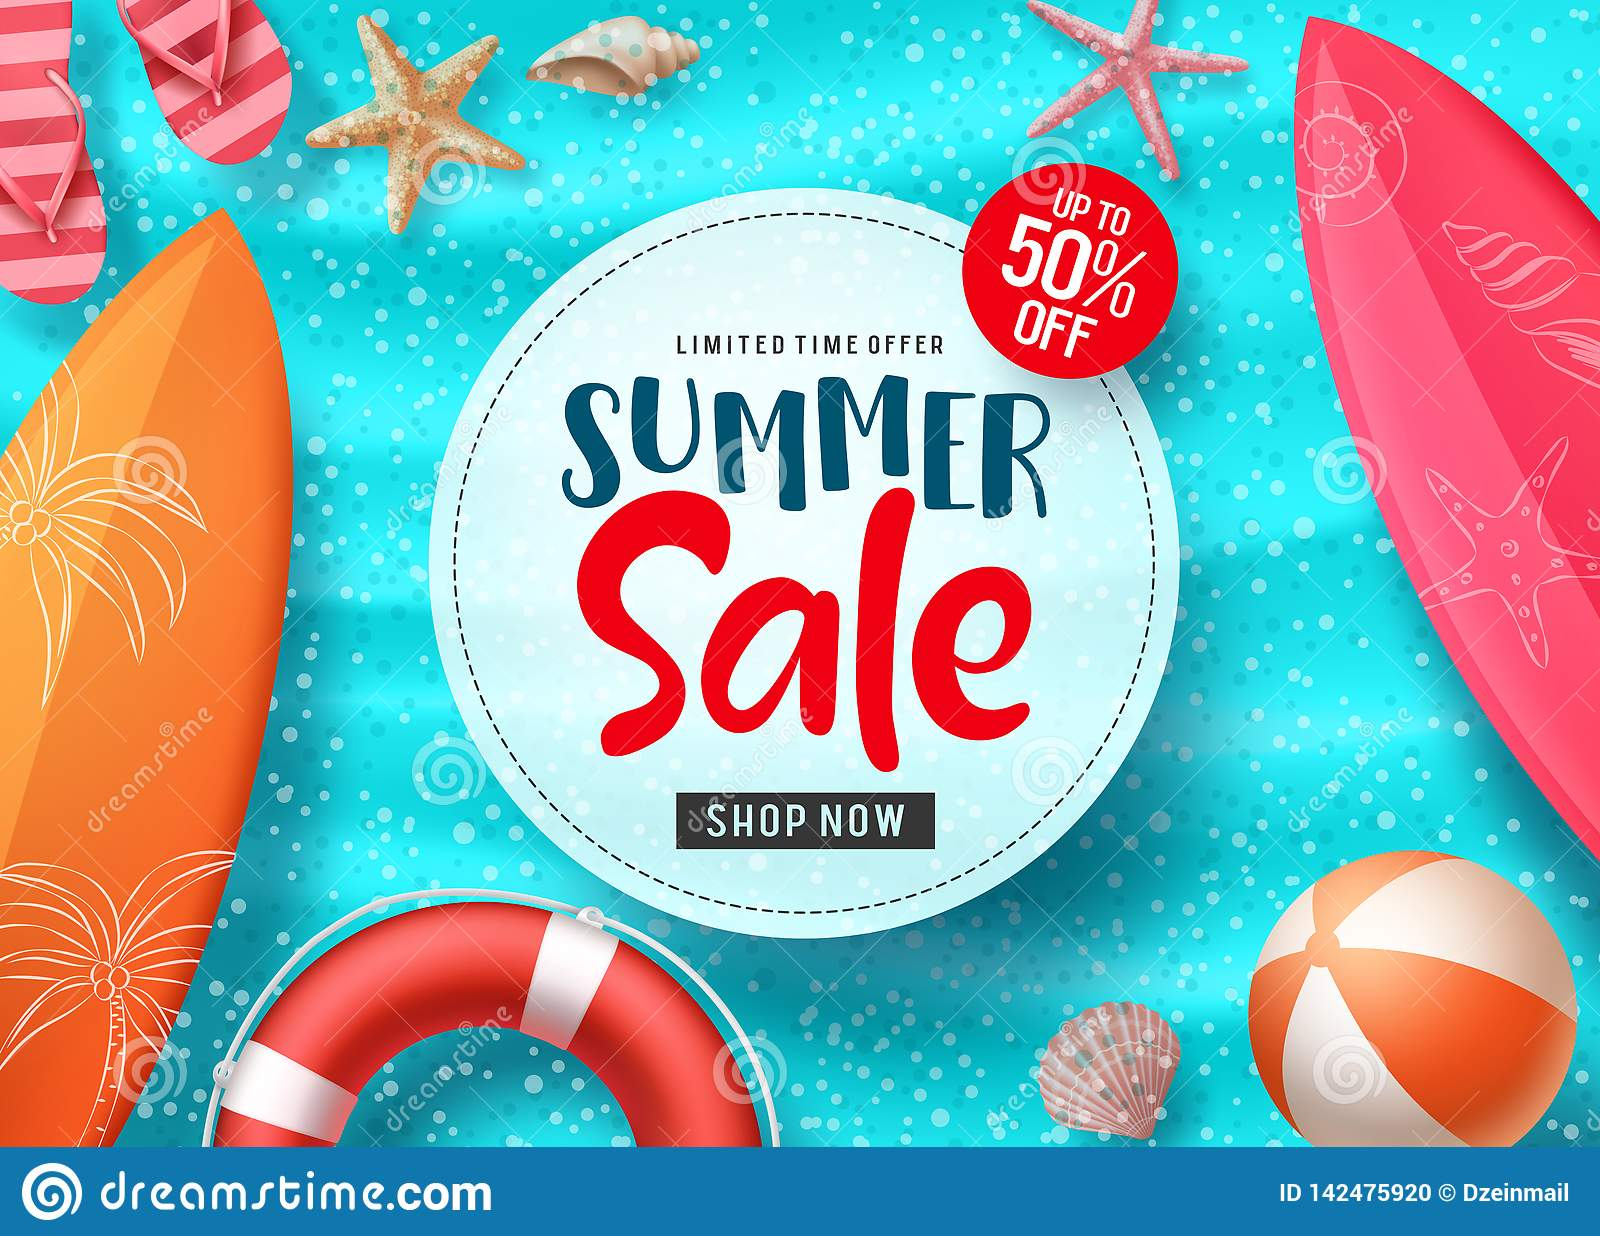 Summer sale vector banner design with colorful beach elements and sale text in white space and blue beach background